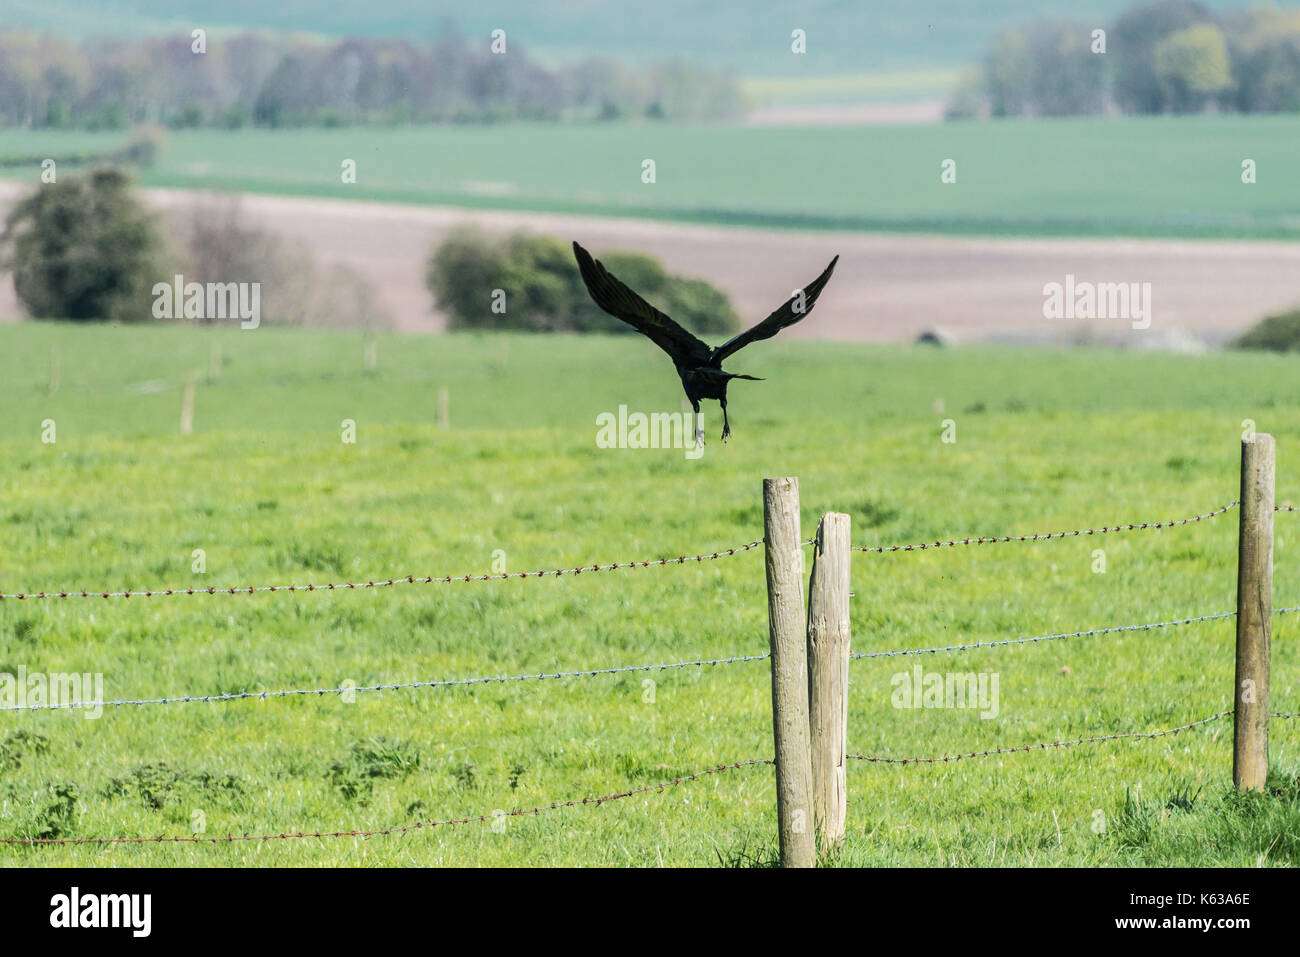 A carrion crow (Corvus corone) taking off from a fence post - Stock Image